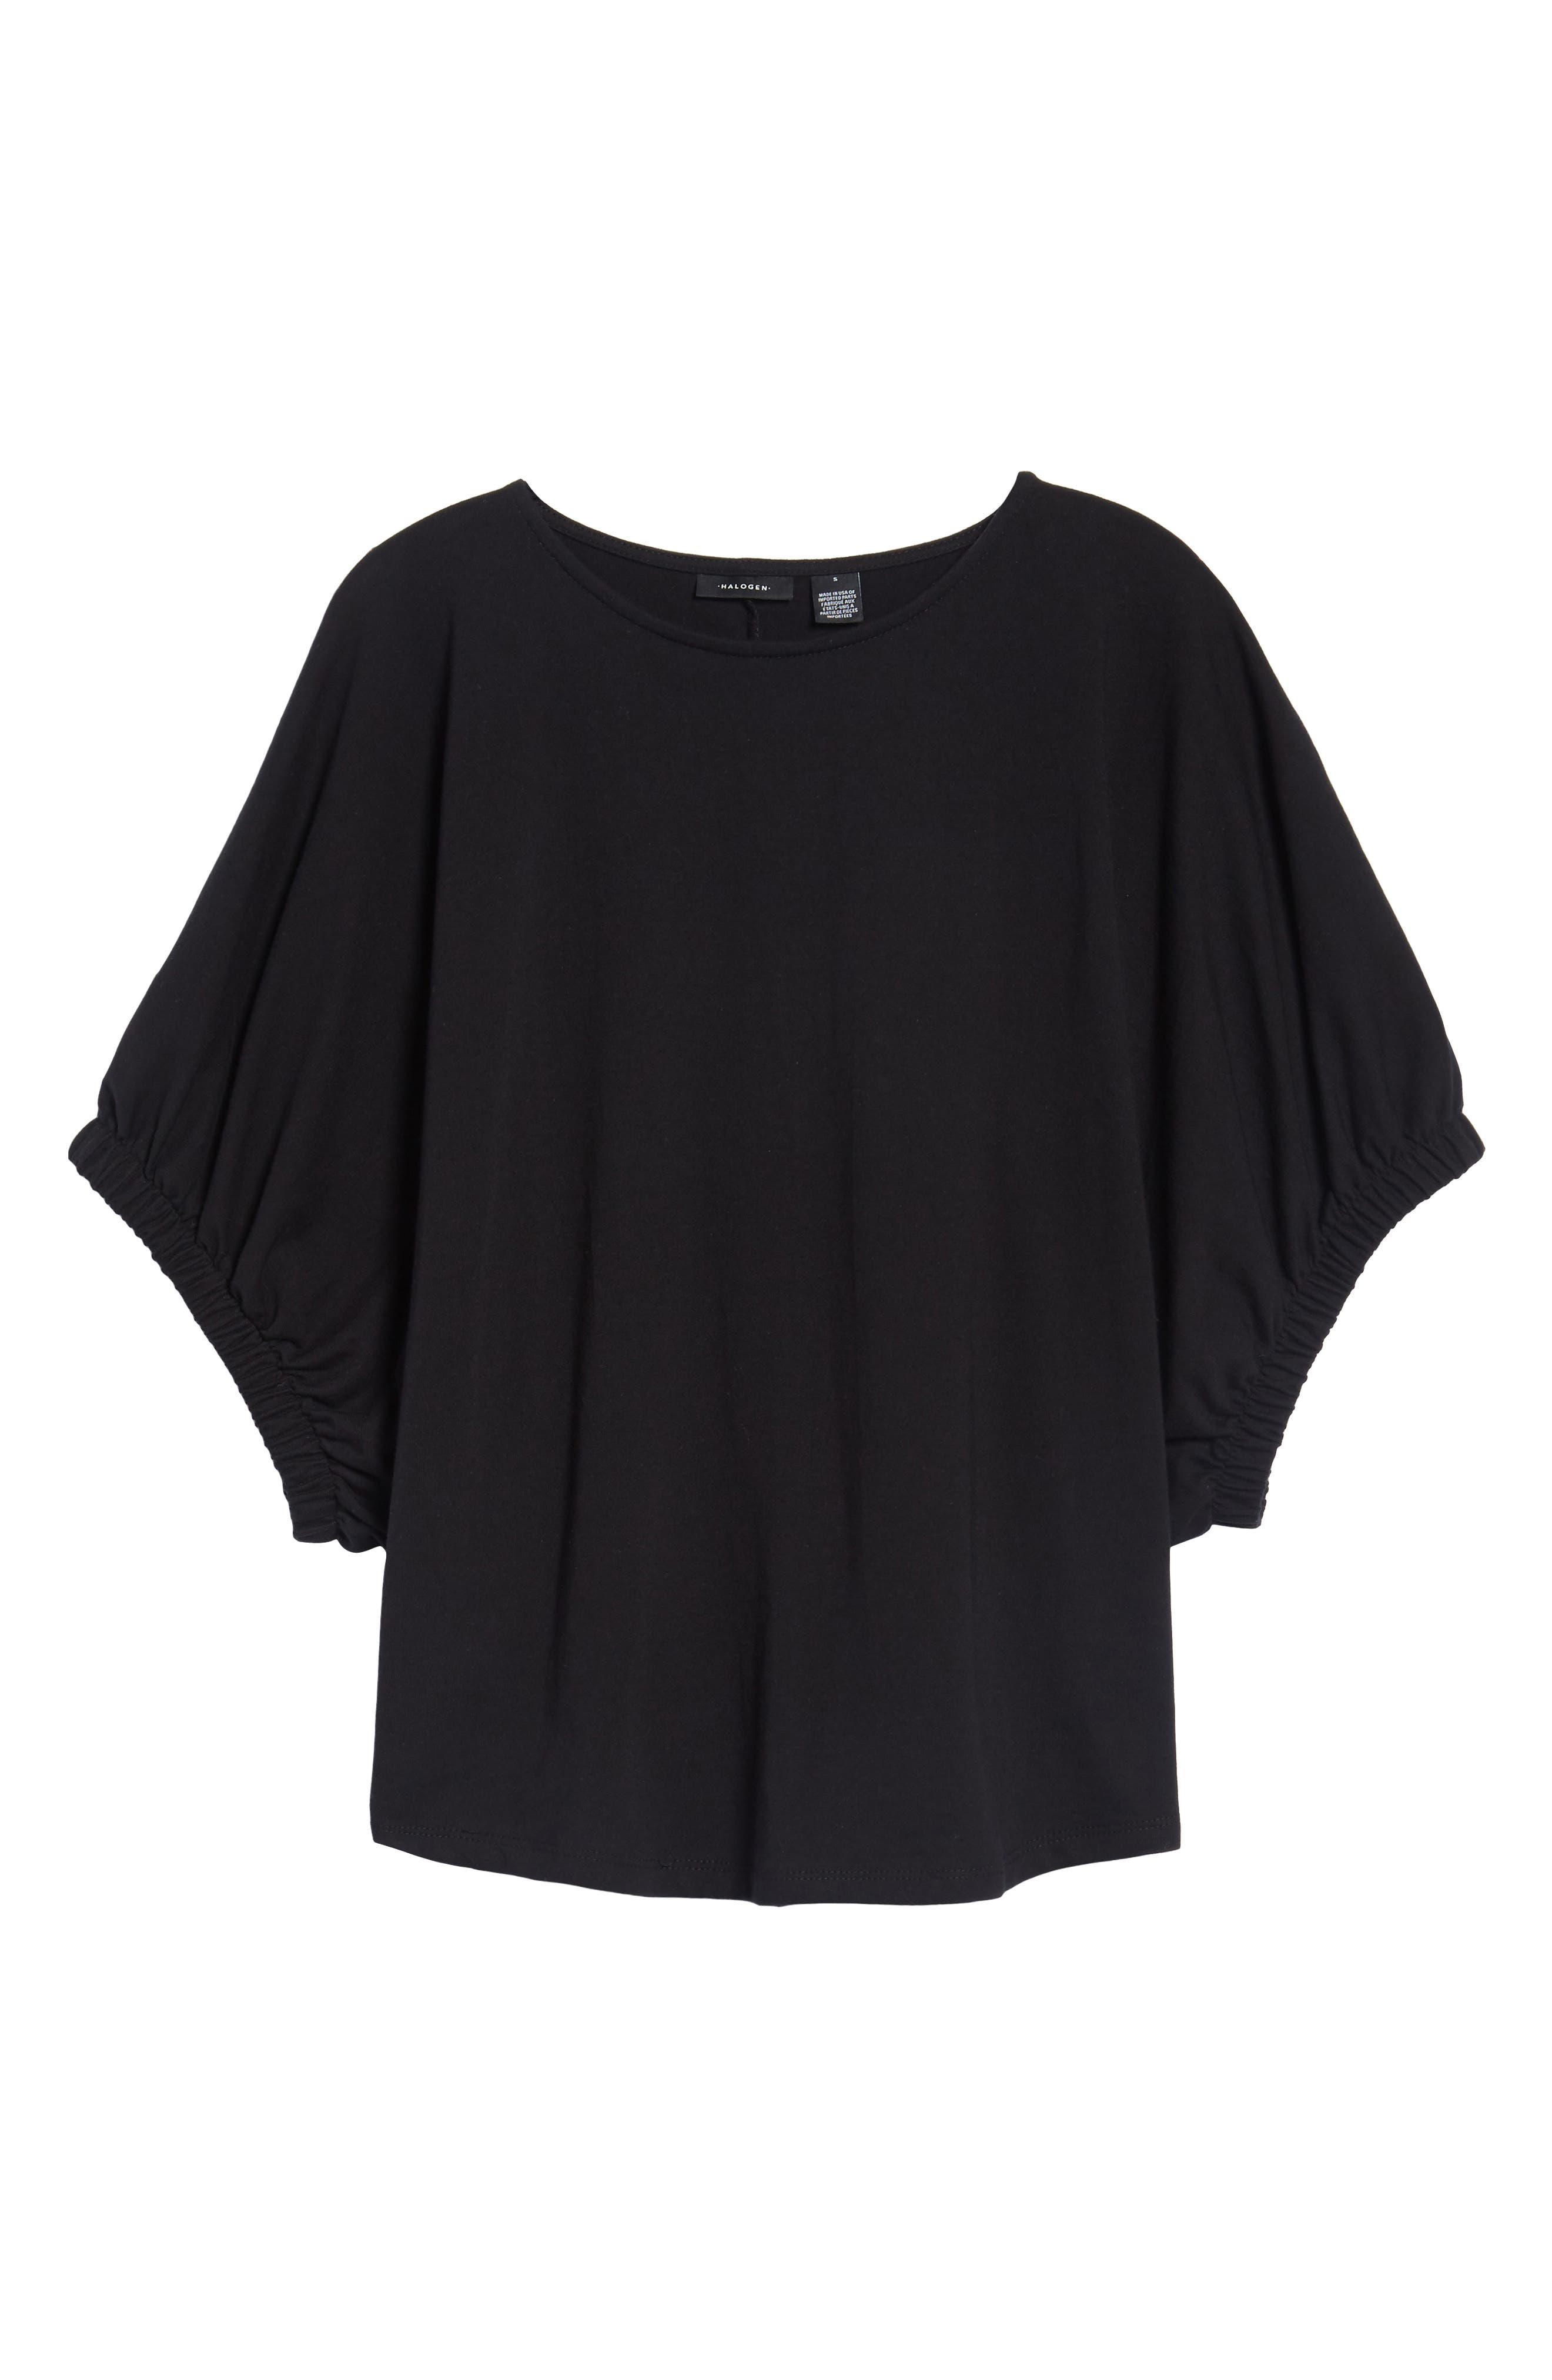 Dolman Sleeve Top,                             Alternate thumbnail 6, color,                             001